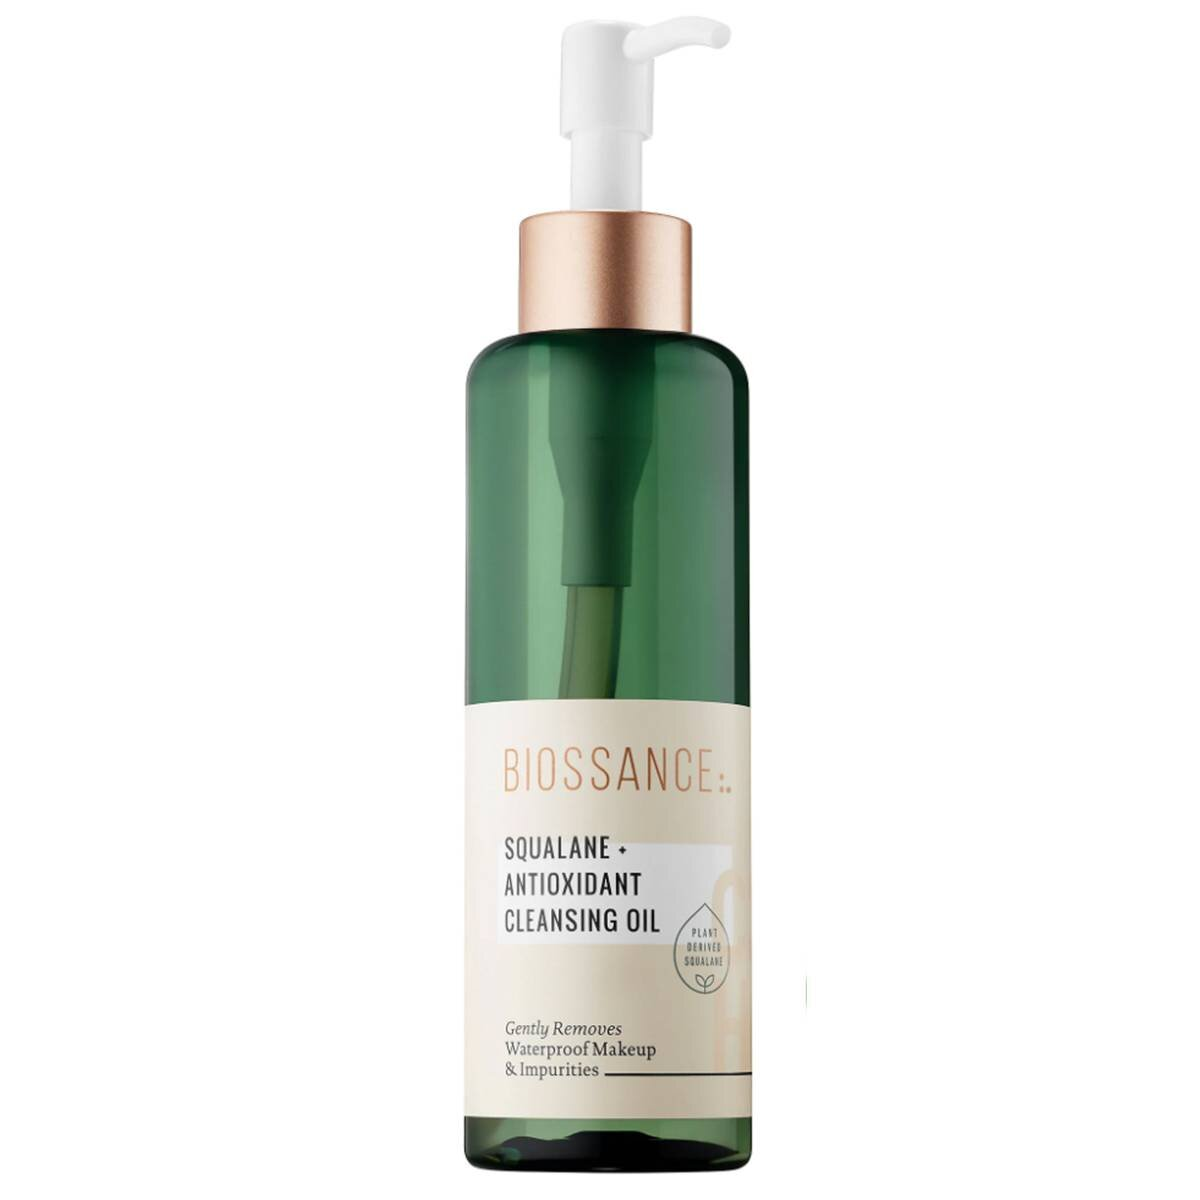 Biossance  Squalane + Antioxidant Cleansing Oil ($30)